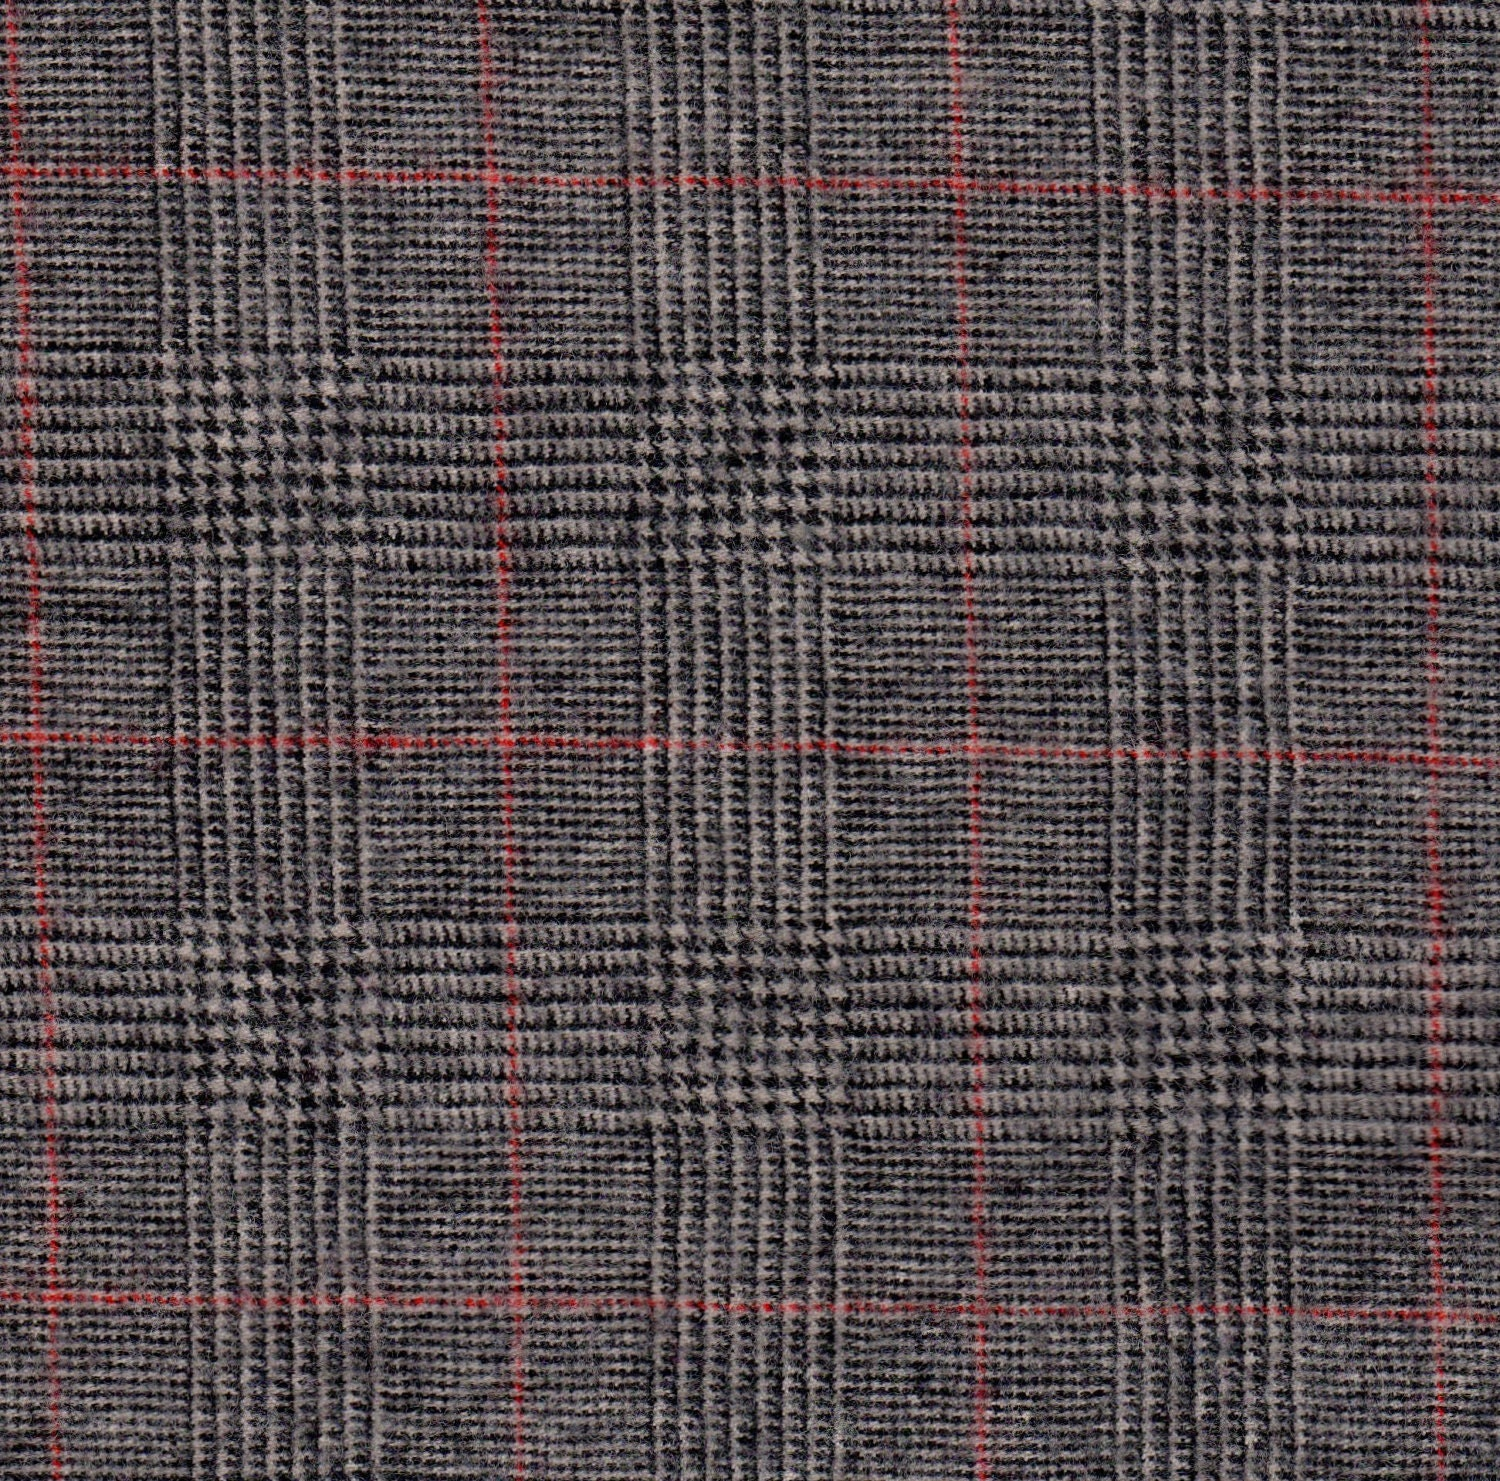 3350 Felted 100 Percent Woven Wool Glen Plaid Greys